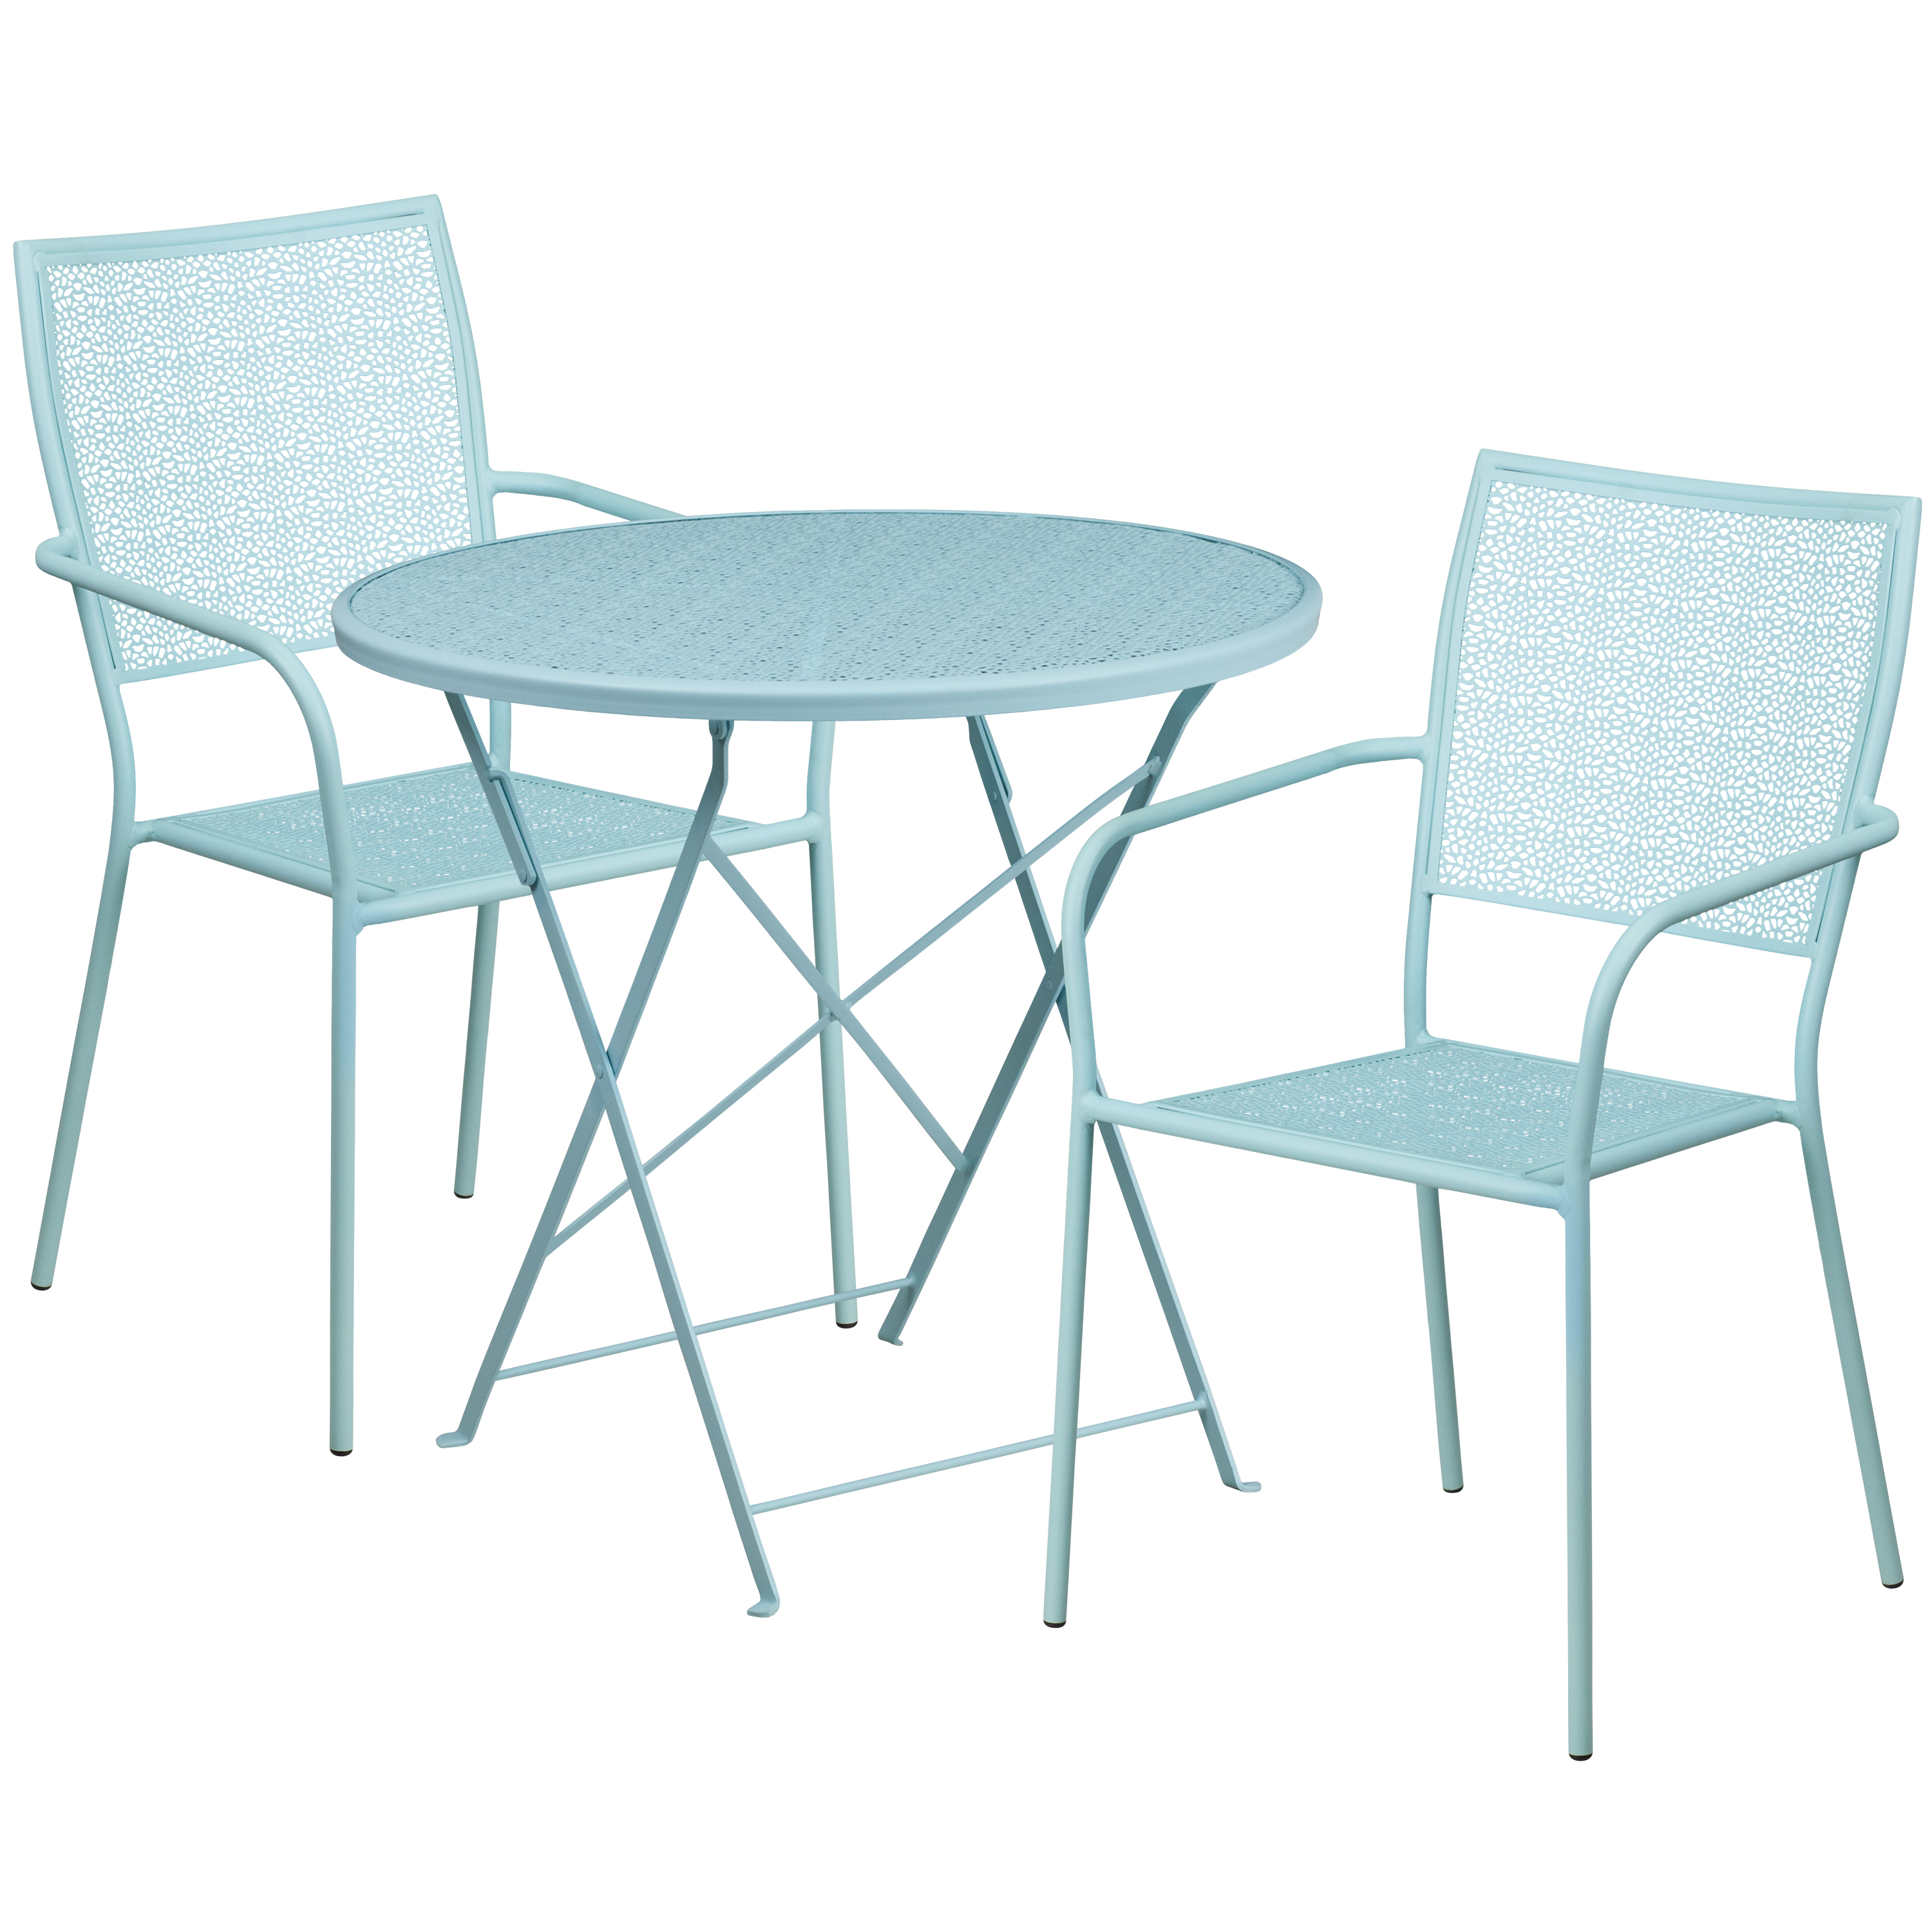 Flash Furniture 30'' Round Indoor-Outdoor Steel Folding Patio Table Set with 2 Square Back Chairs, Multiple Colors